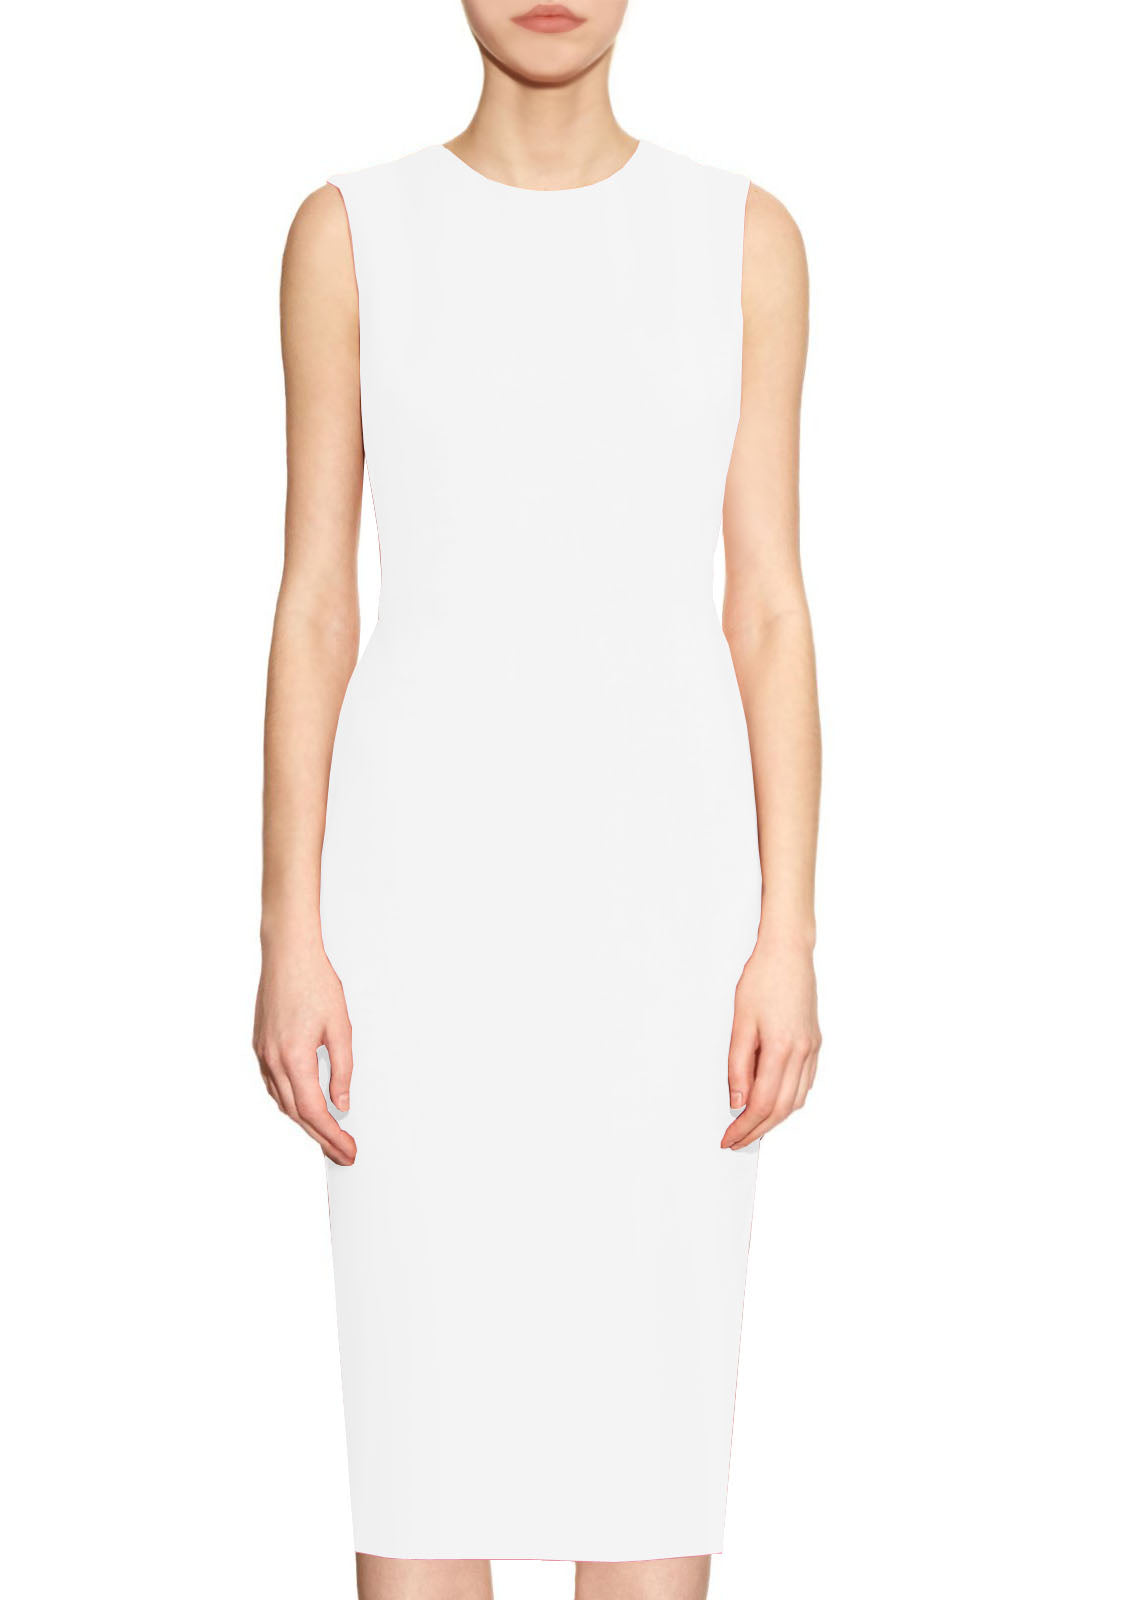 White Basic Round Neck Sheath Dress - Krew